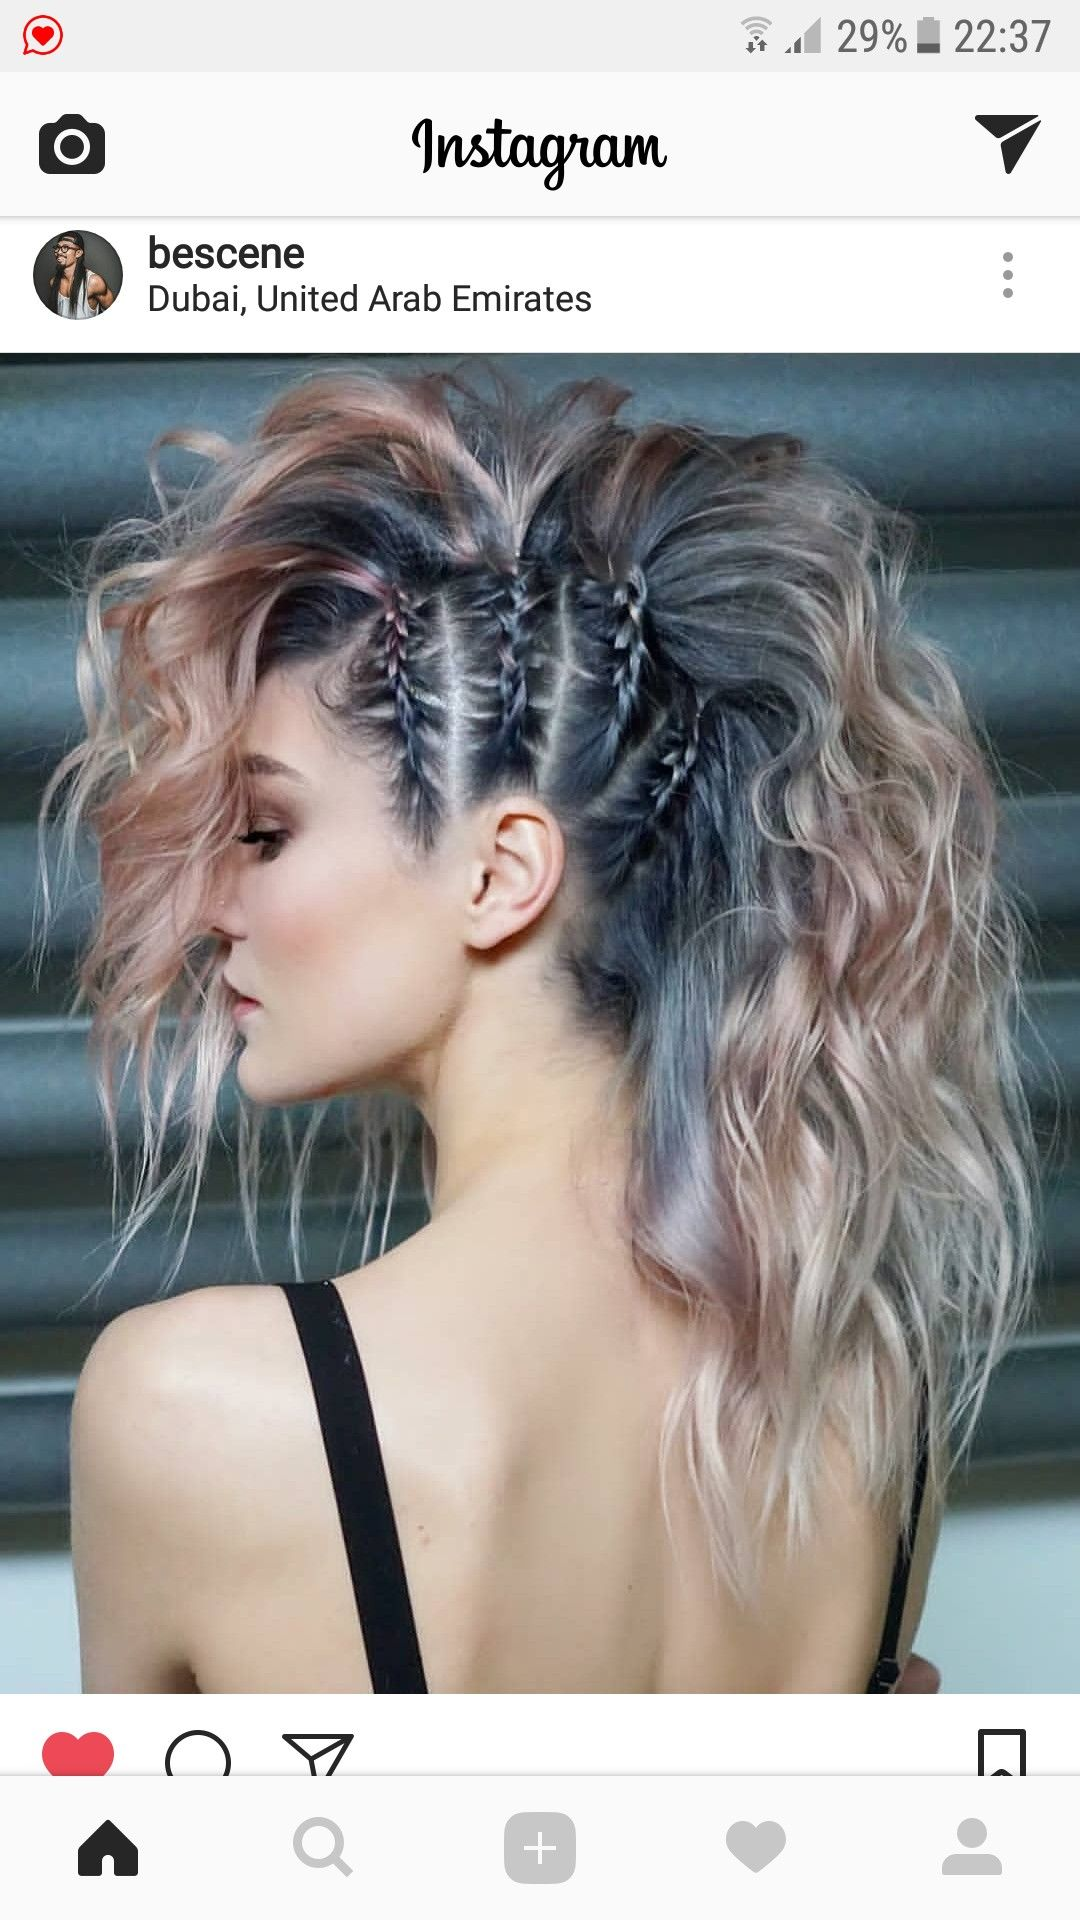 pretty cool 😎 | hair styles & color in 2019 | long hair